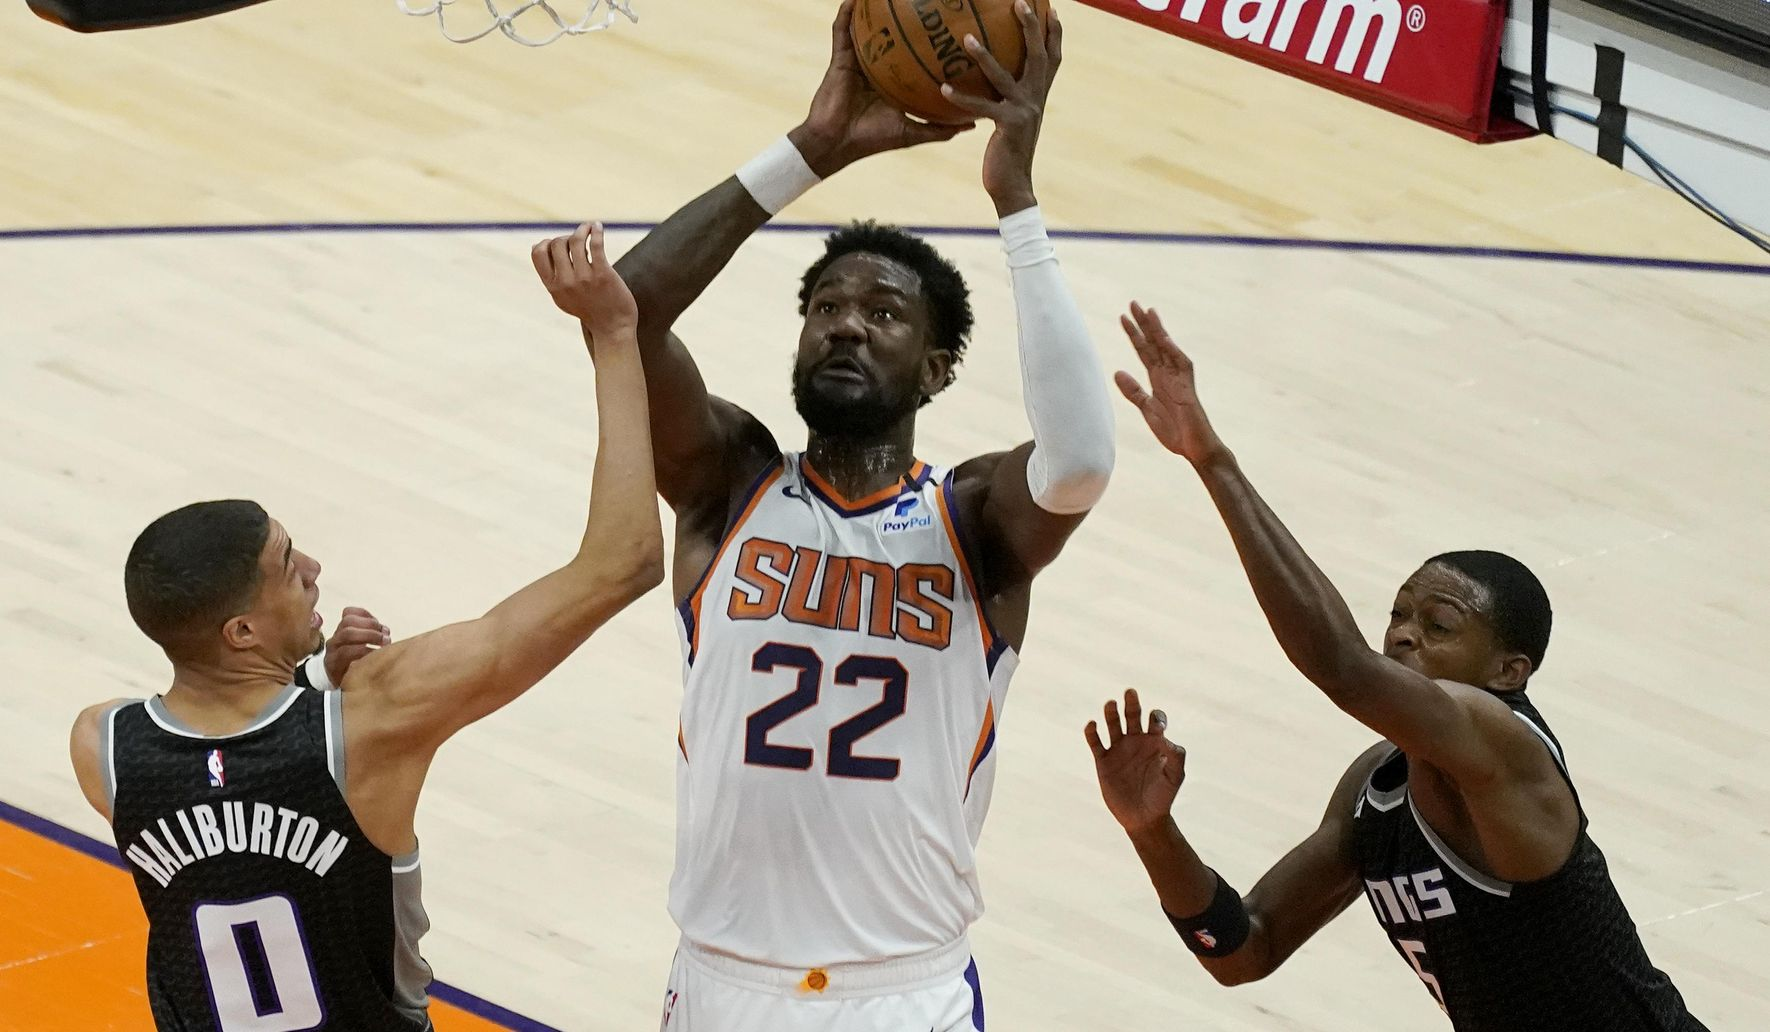 Kings_suns_basketball_05814_c0-144-3443-2151_s1770x1032